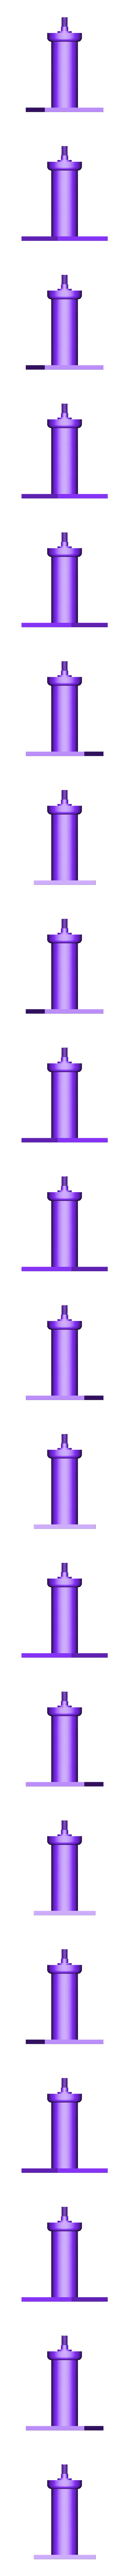 Base.stl Download free STL file Anemometer w/ Hall Effect Sensor • Object to 3D print, SeanTheITGuy